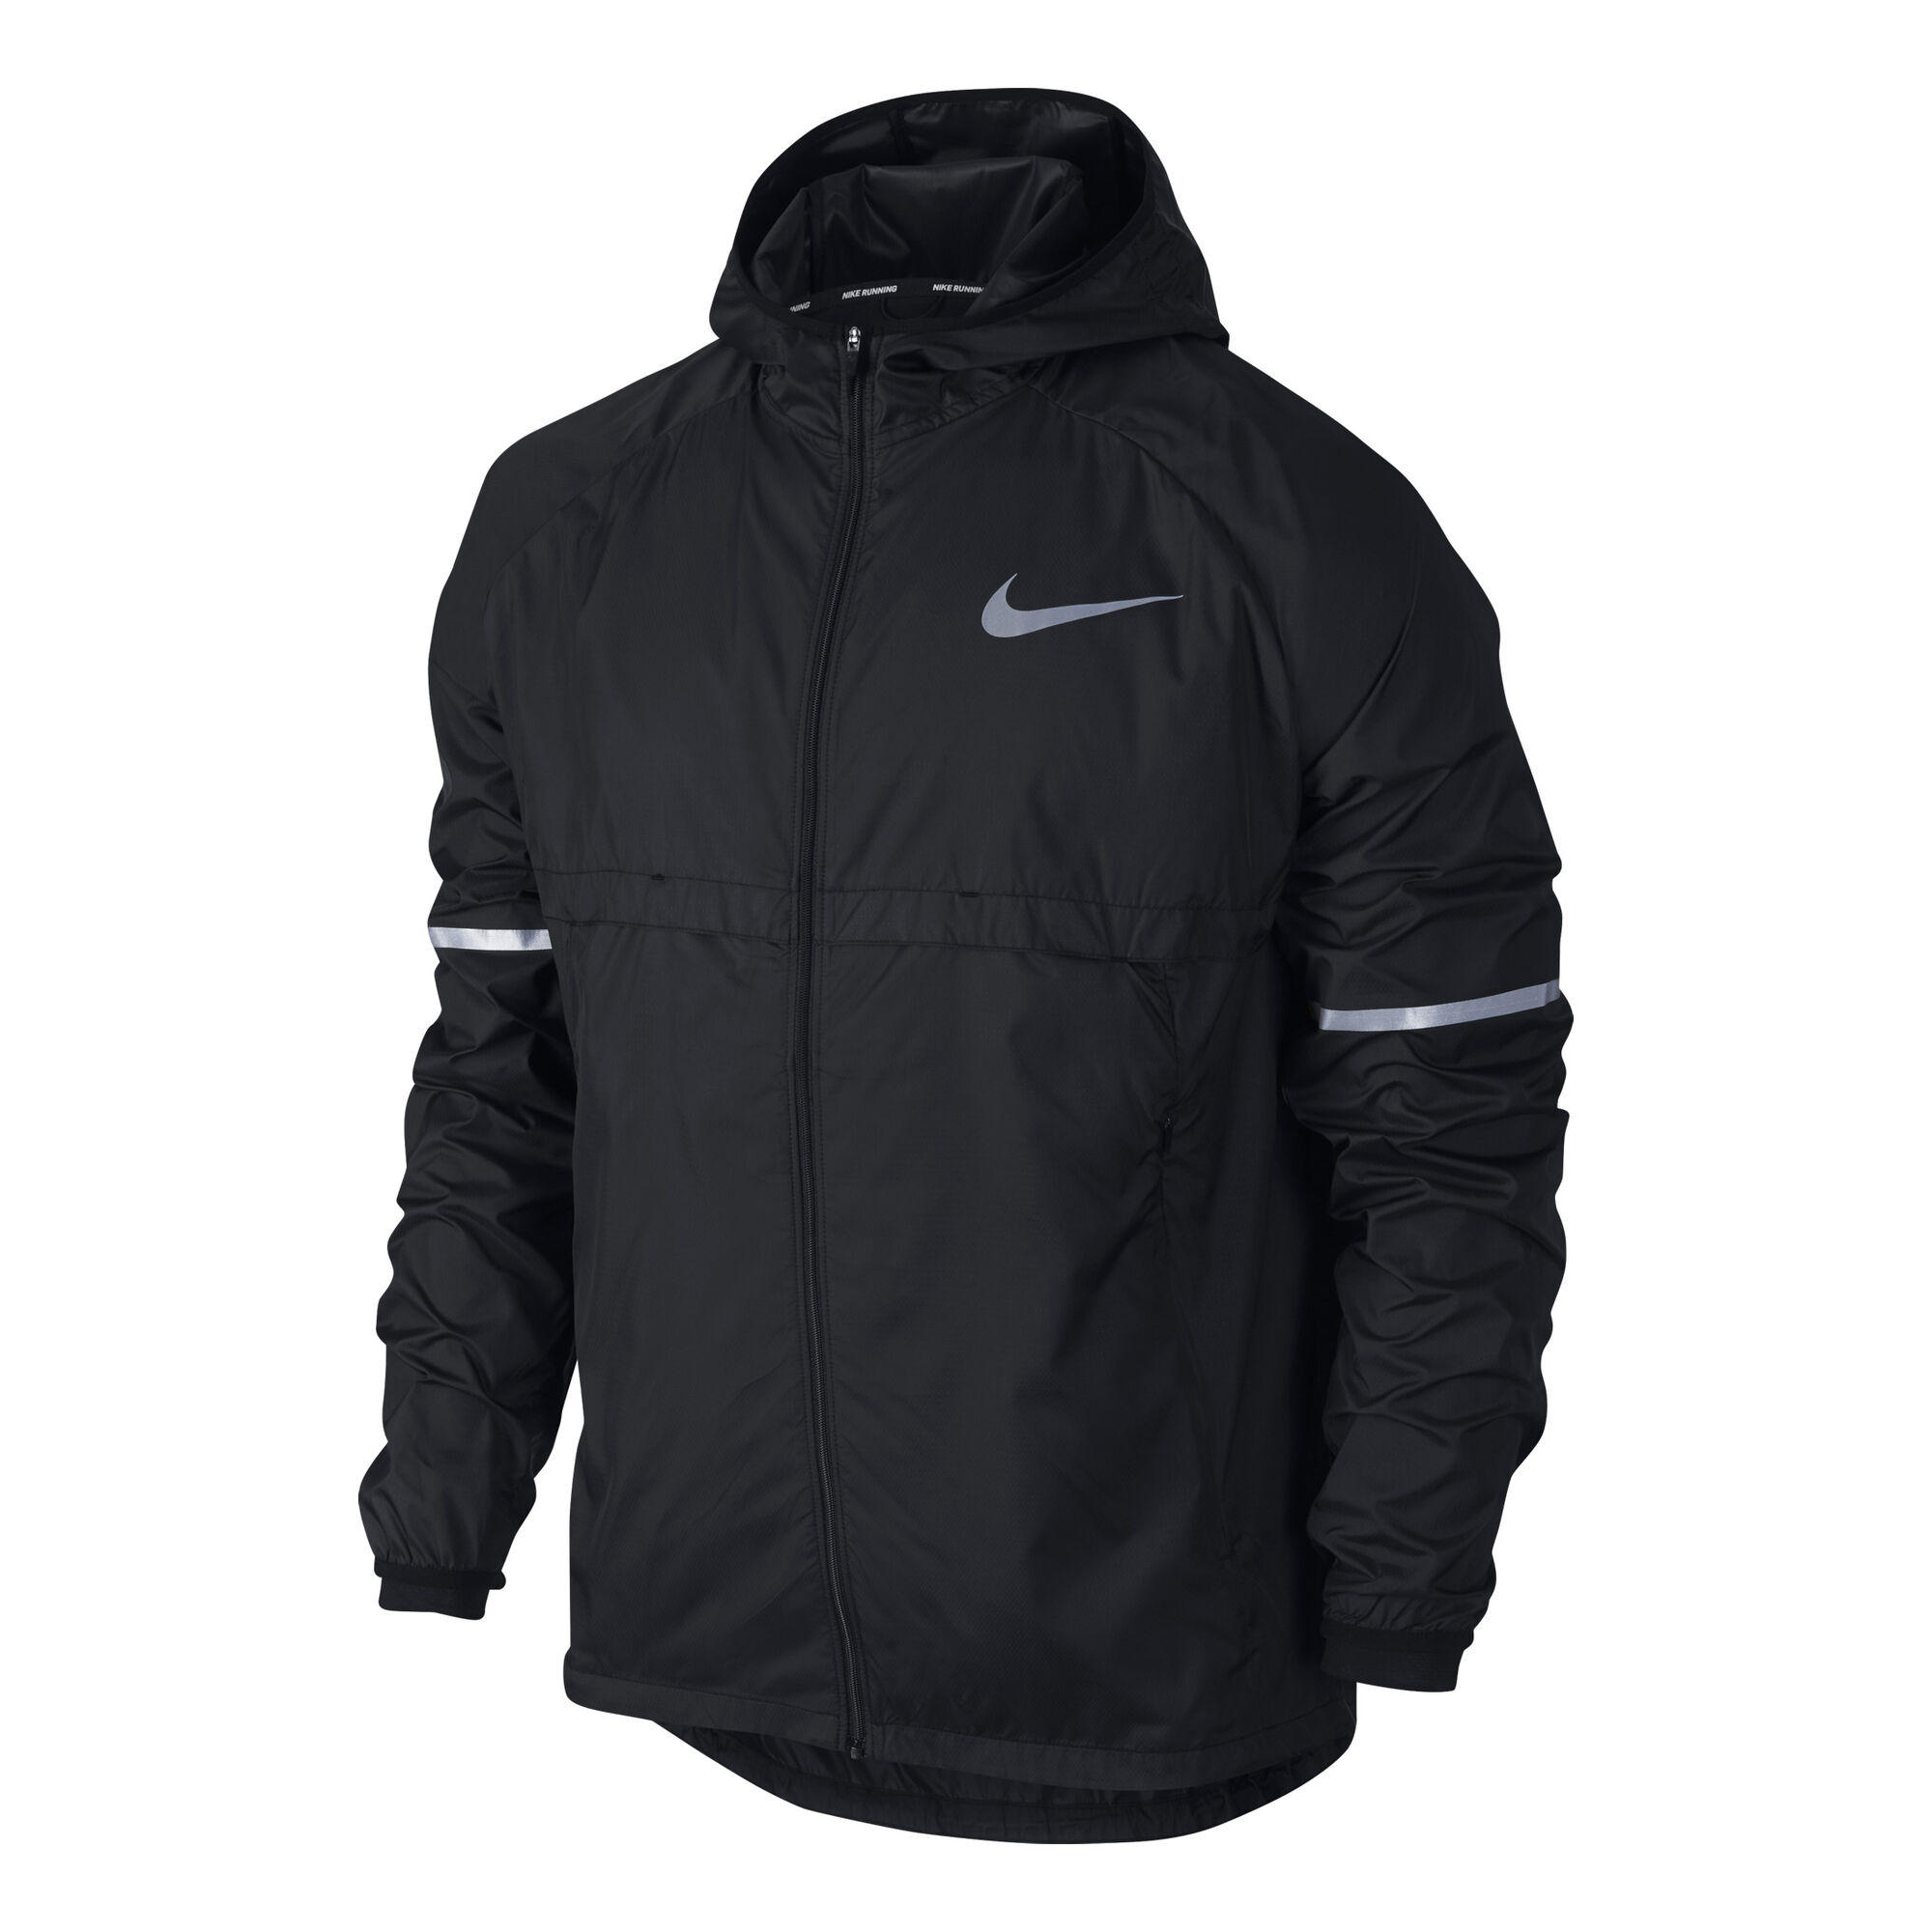 a6d40debaaa71 buy Nike Shield Running Jacket Men - Black